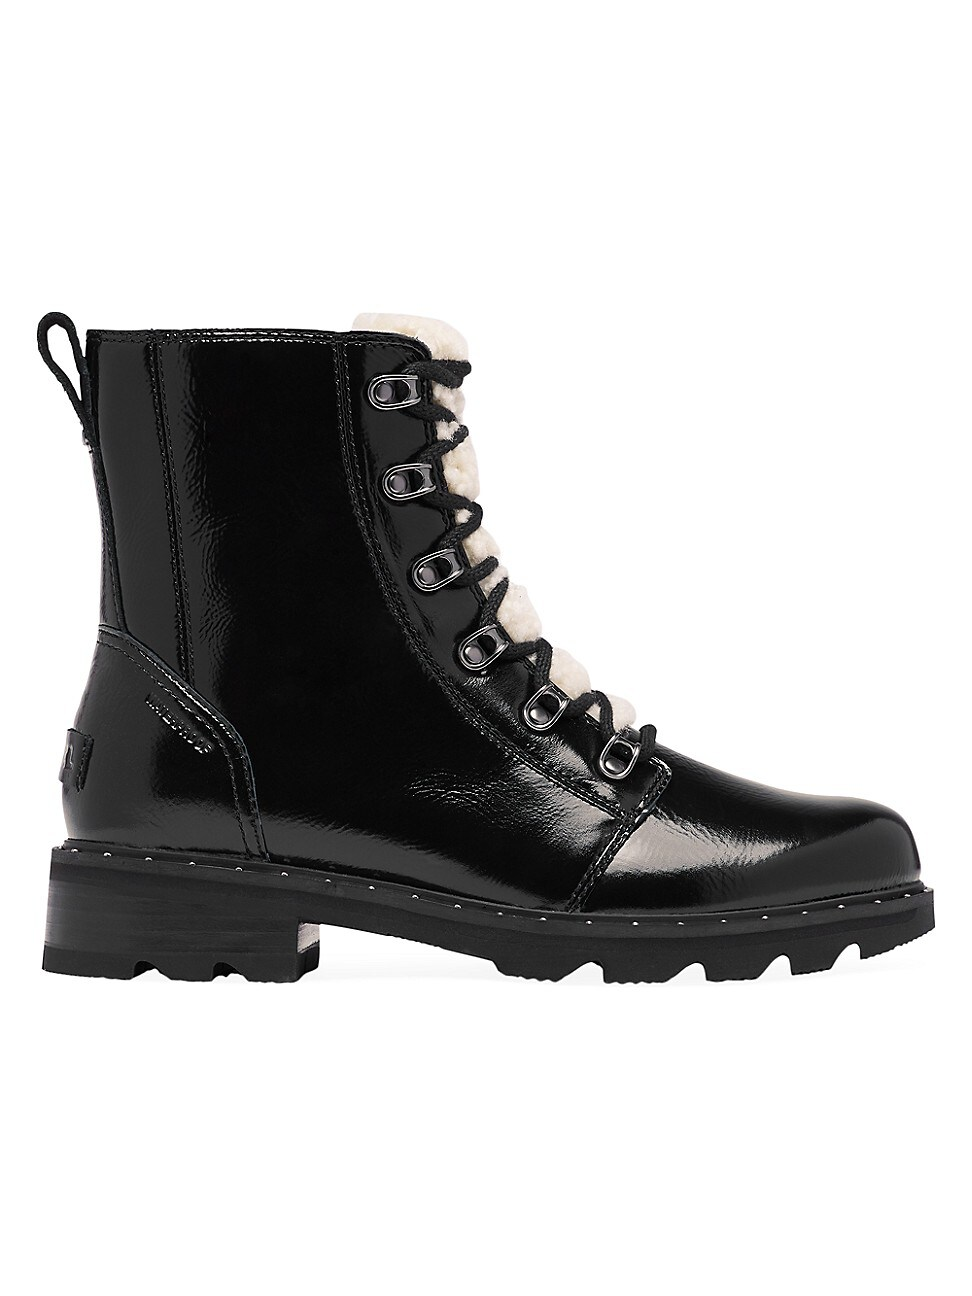 Sorel Leathers WOMEN'S LENNOX SHEARLING-TRIMMED PATENT LEATHER COMBAT BOOTS